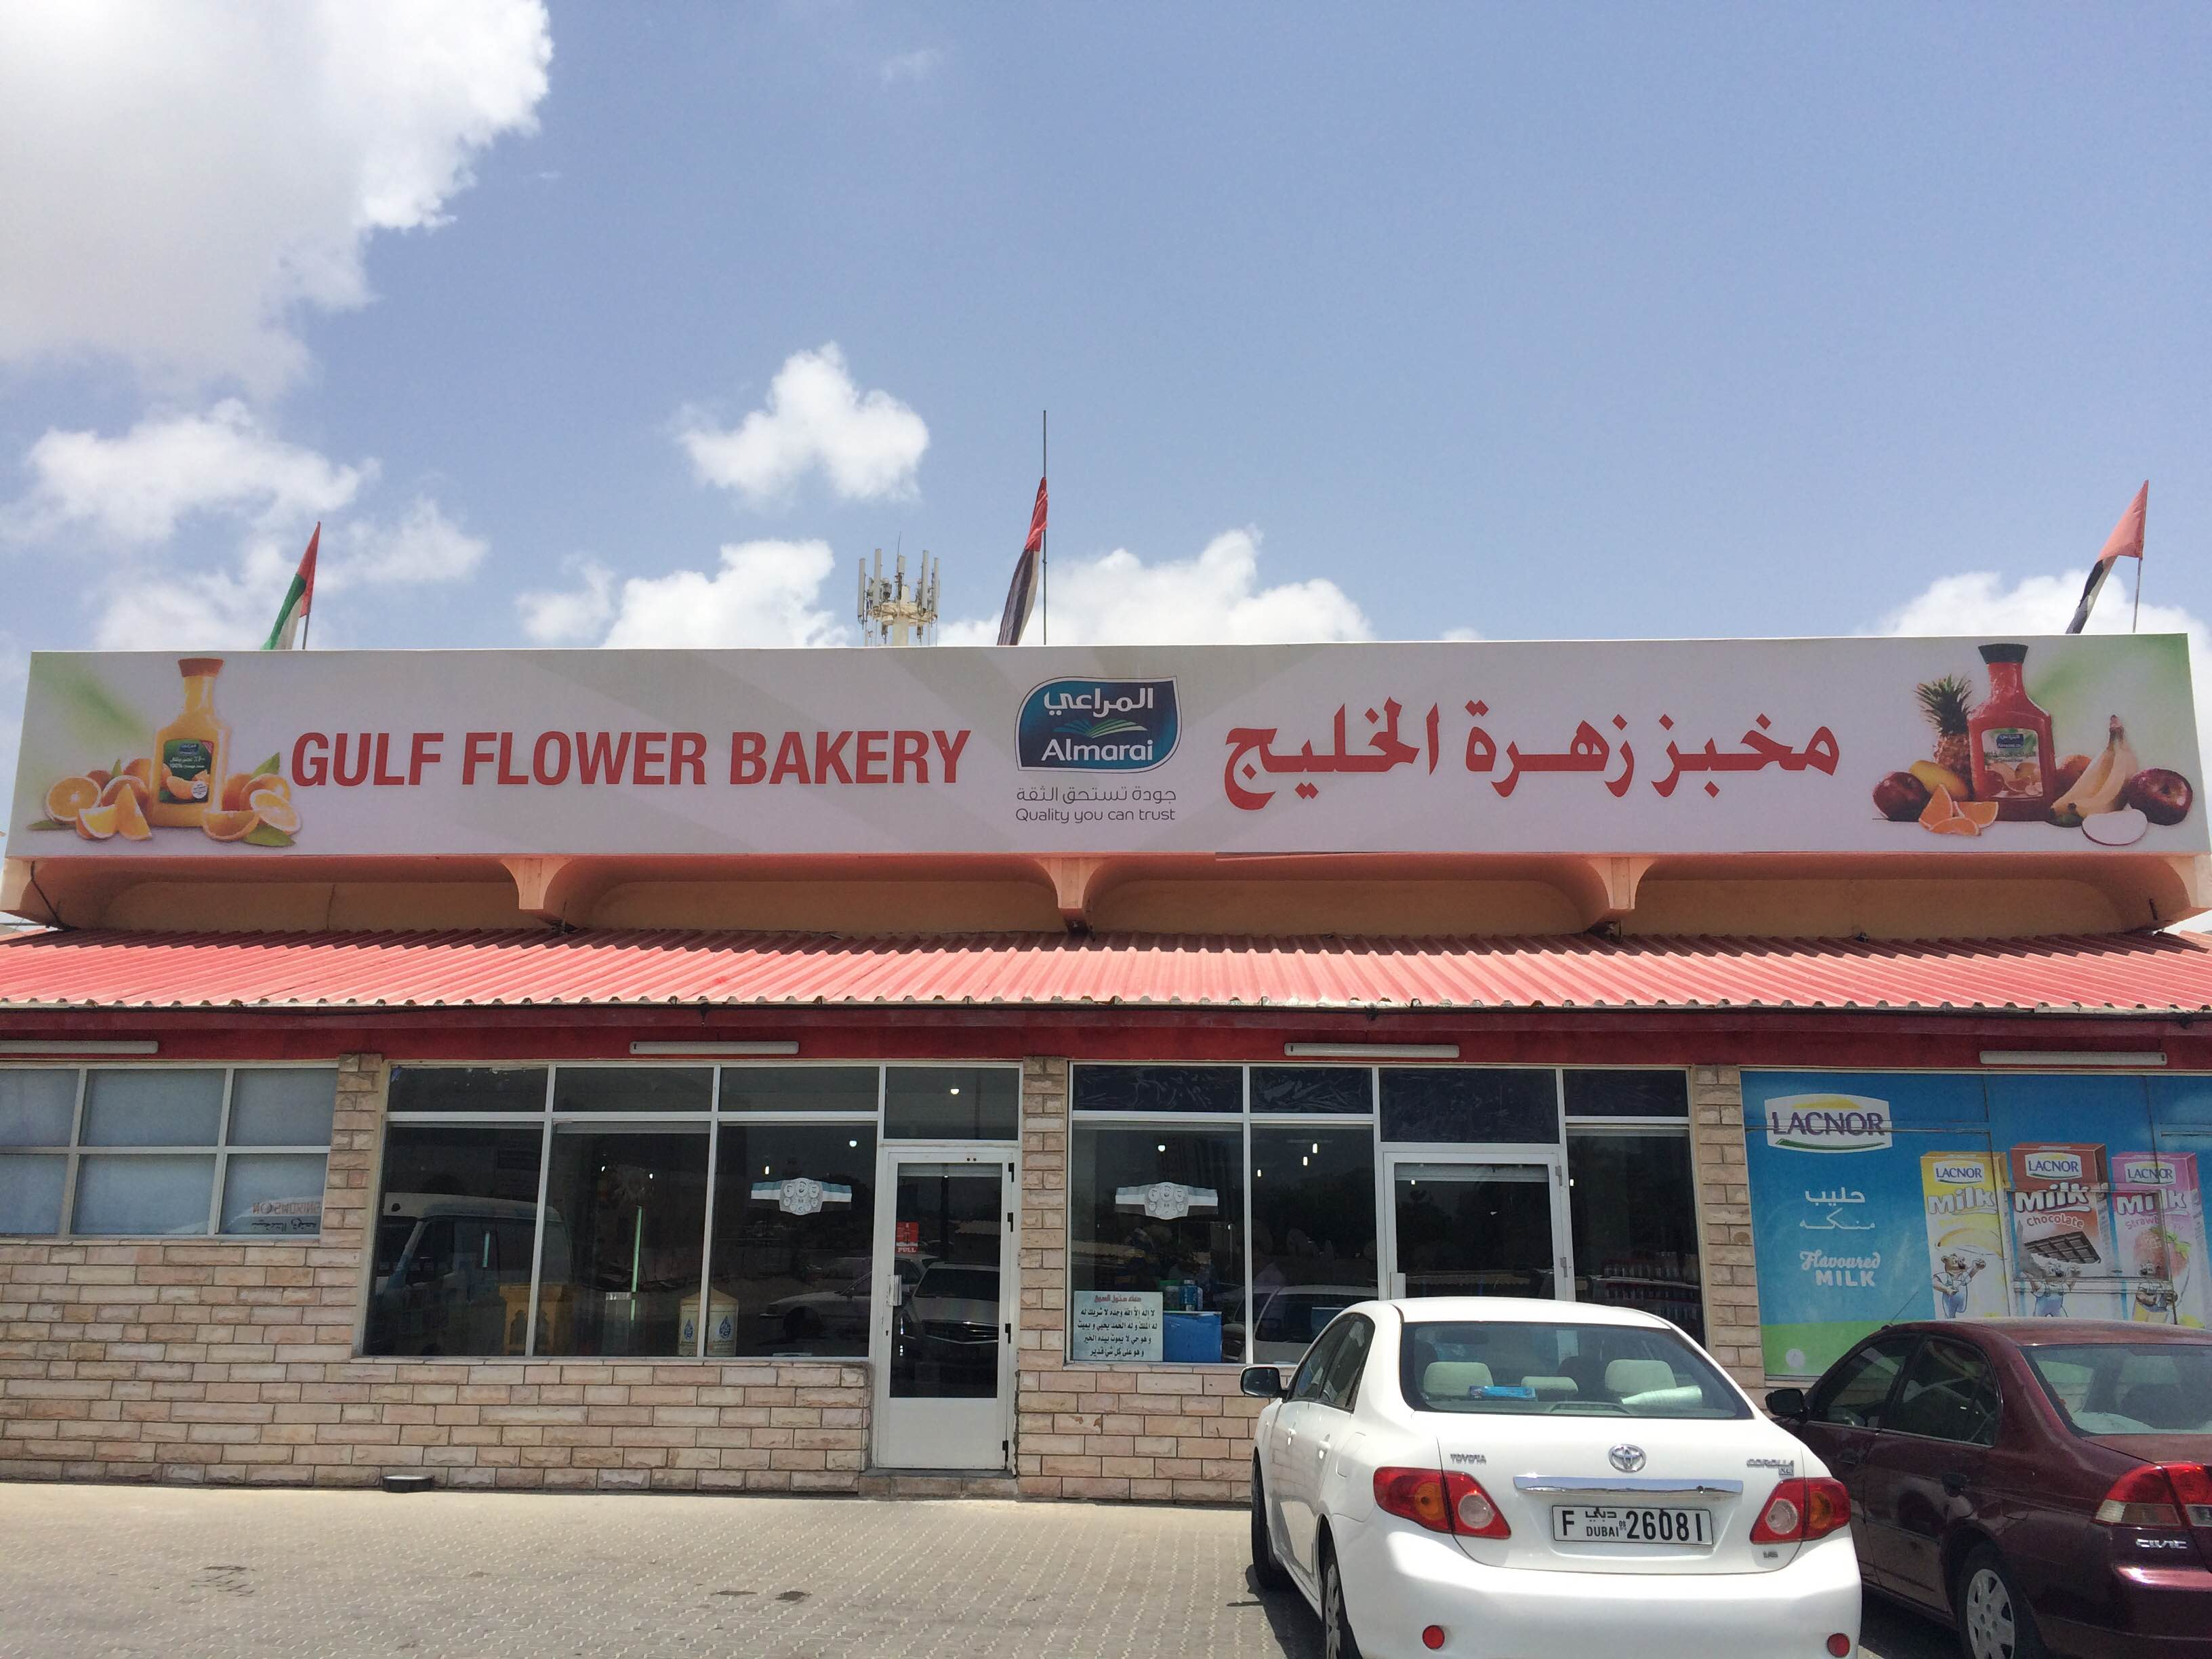 Gulf Flower bakery